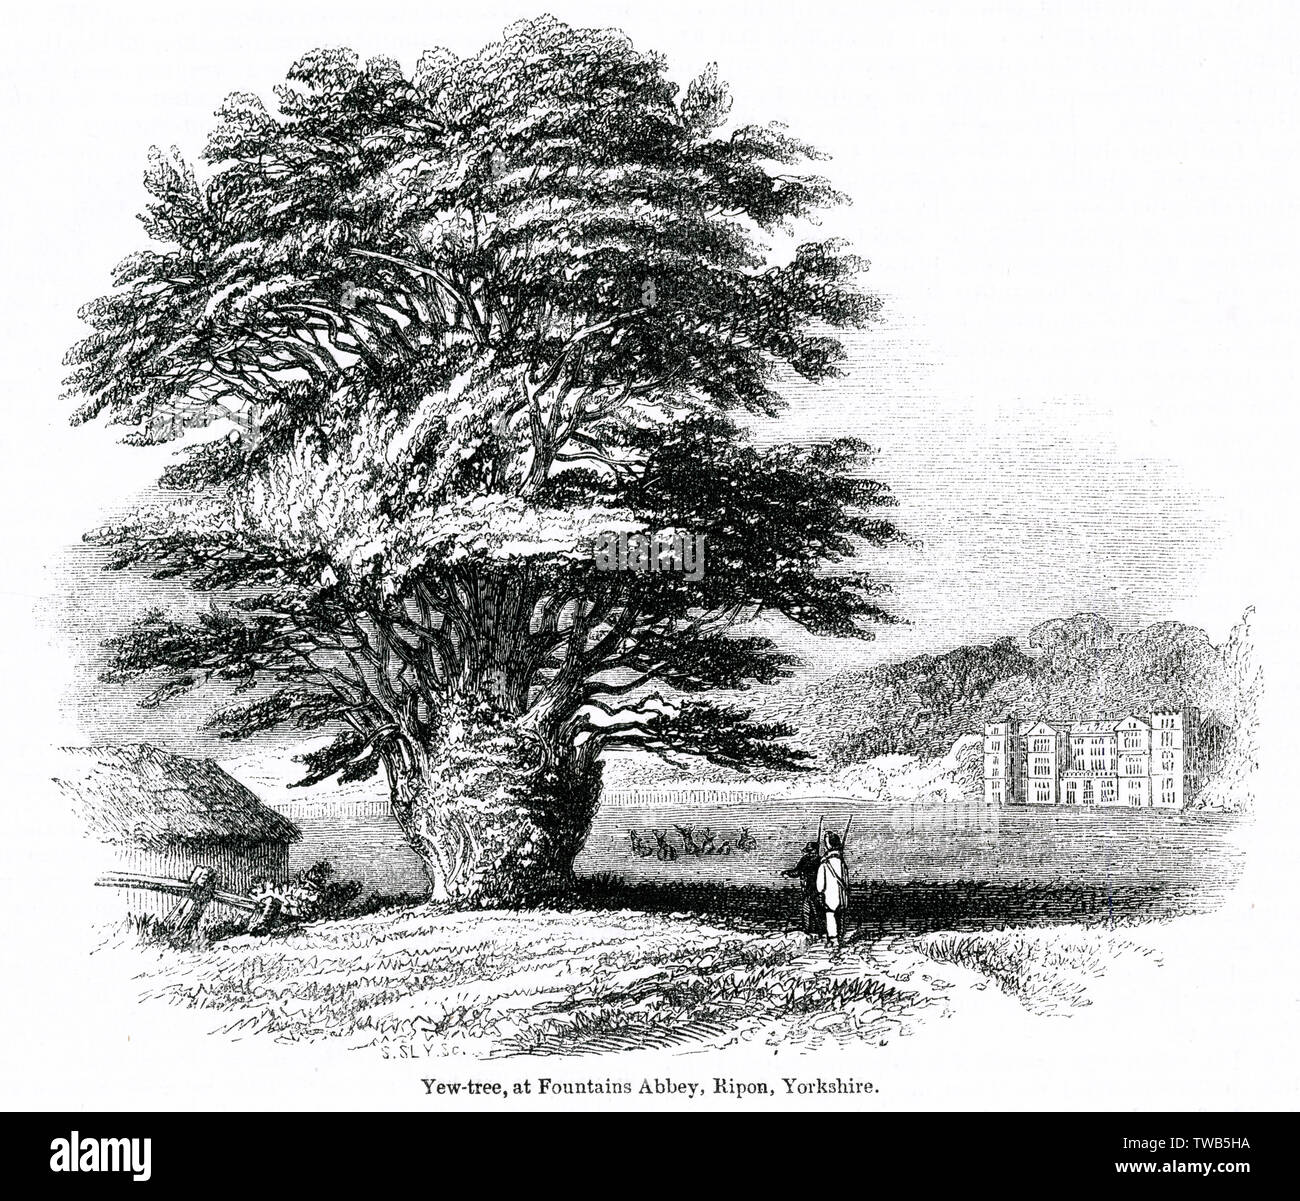 Yew tree at Fountains Abbey, Ripon, Yorkshire.      Date: 1843 - Stock Image